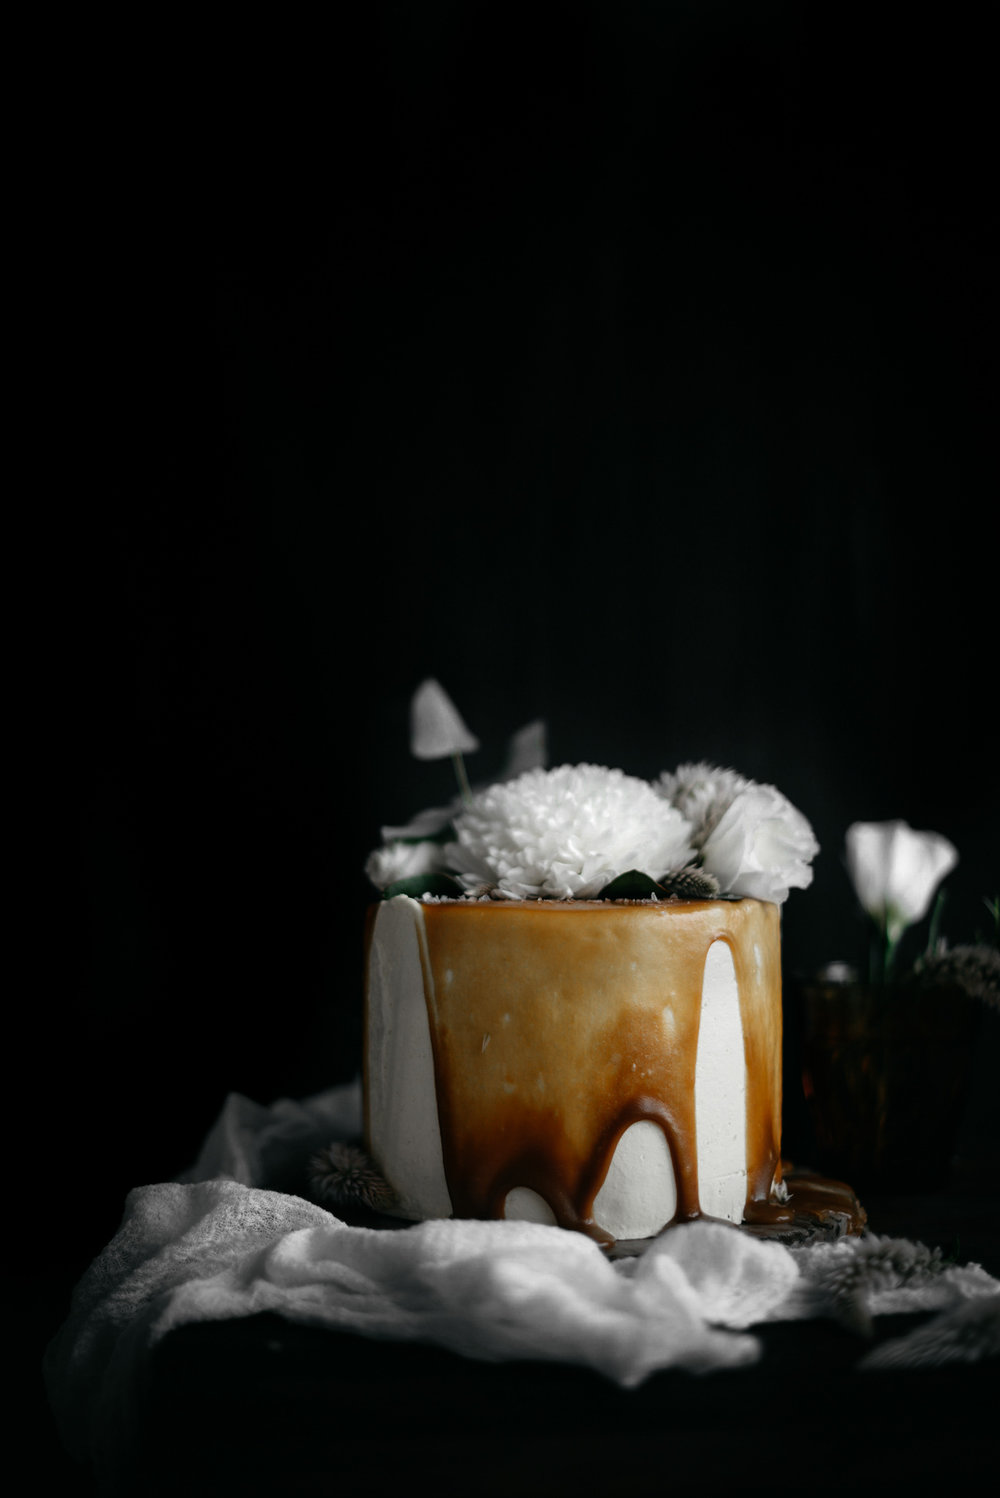 Italian-Orange-Blossom-and-Almond-Cake-with-Orange-Curd-Mascarpone-Swiss-Meringue-Buttercream-and-Fleur-d'Oranger-Caramel-10-2.jpg